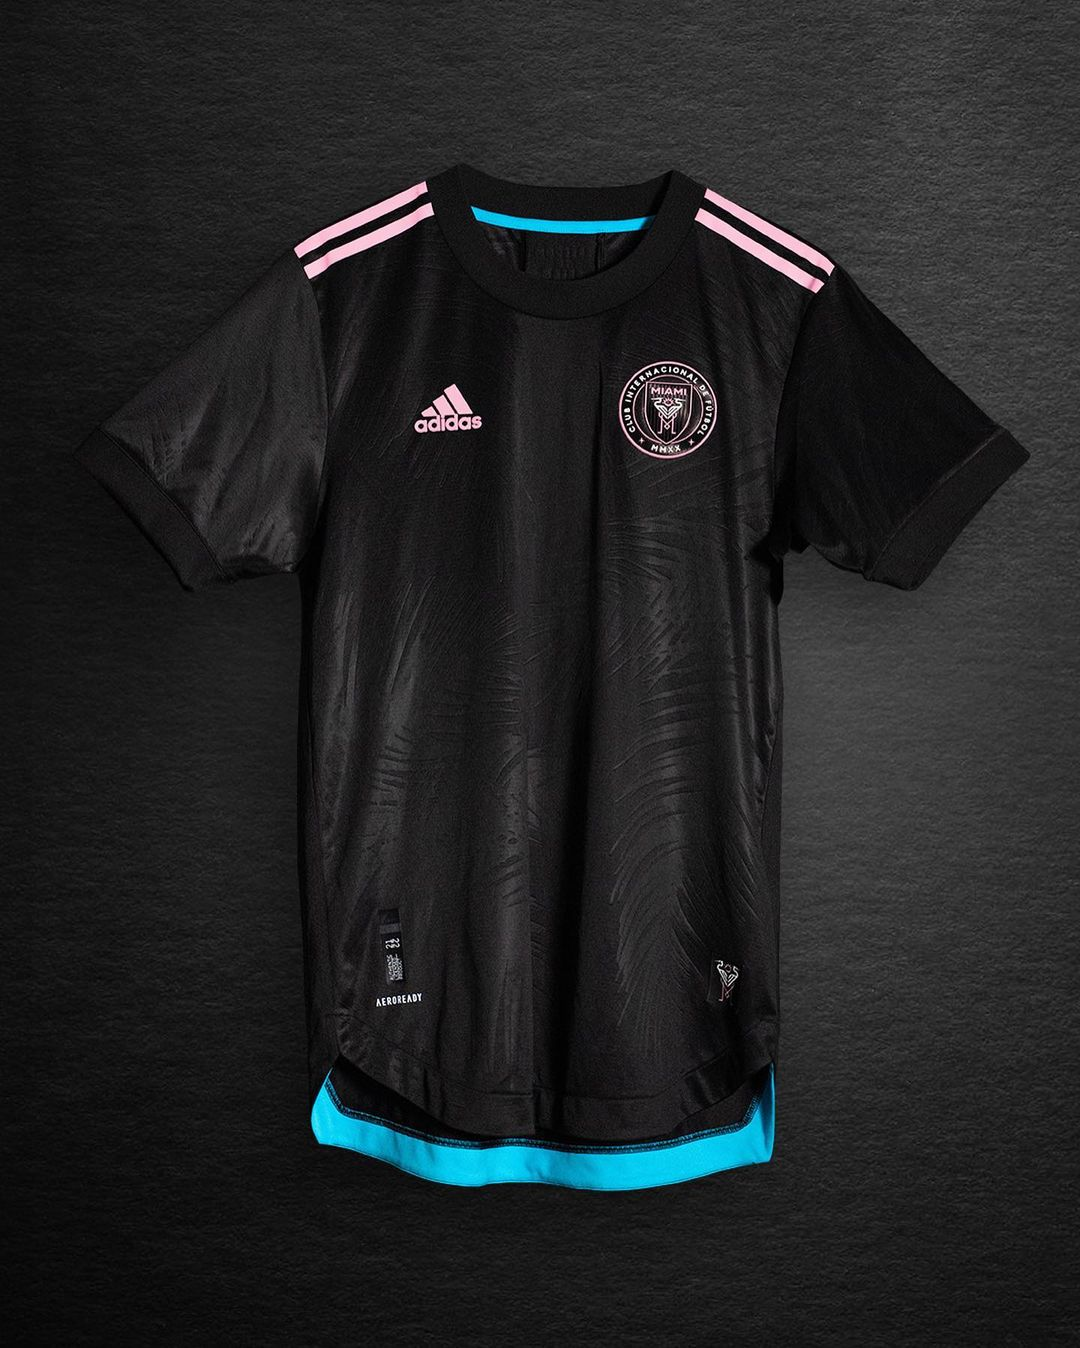 Black jersey with pink stripes on the jersey and light blue hem at the bottom